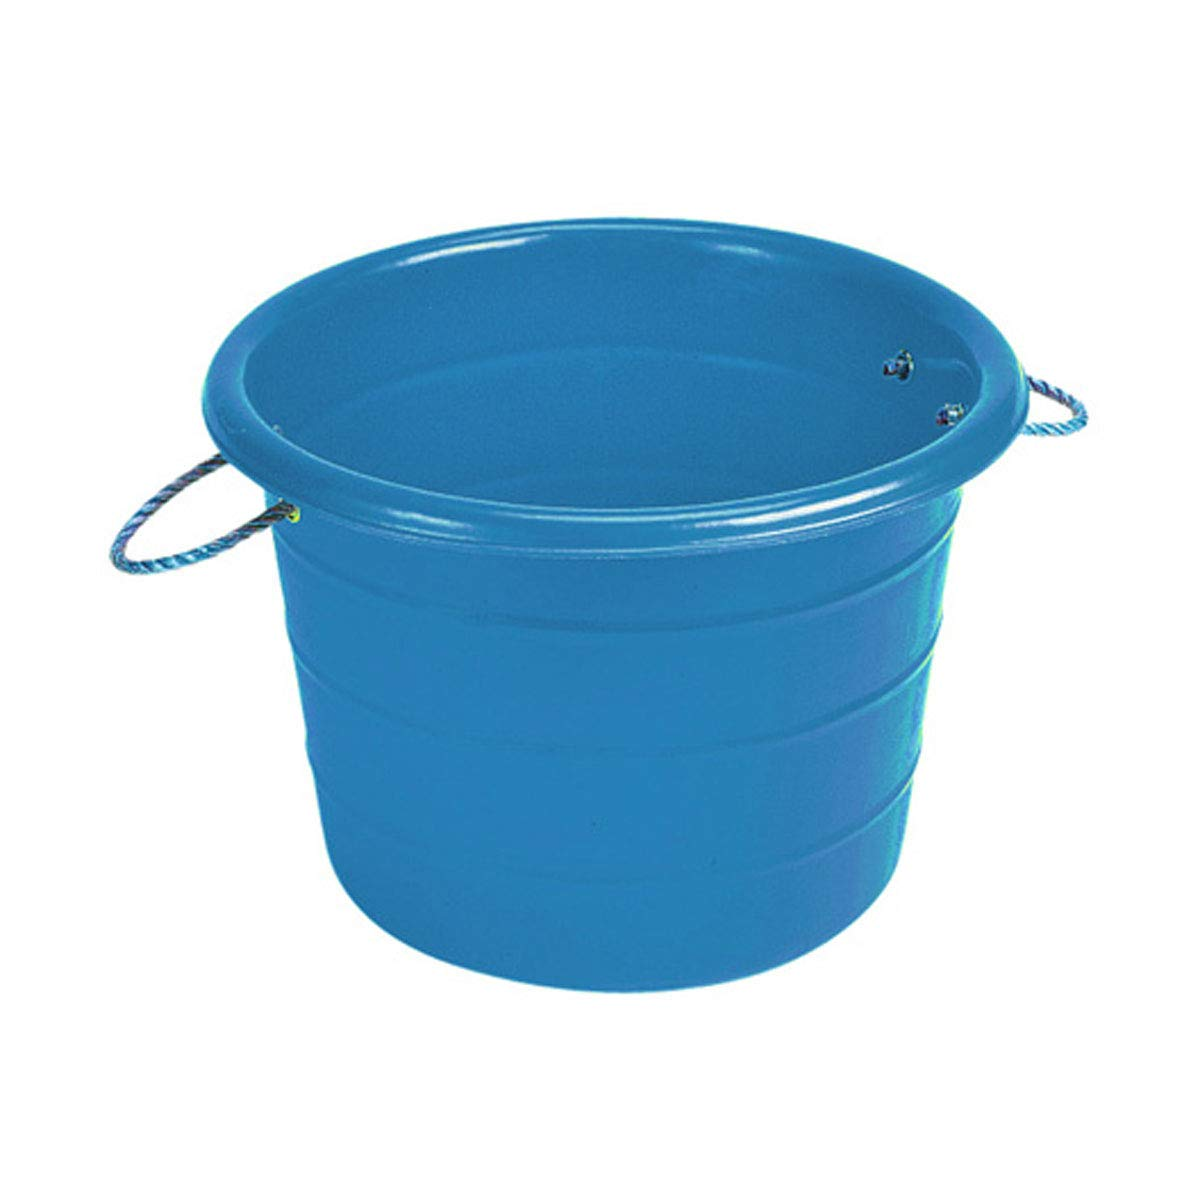 Stubbs Large Manure Bucket (One Size) (Blue) by Stubbs